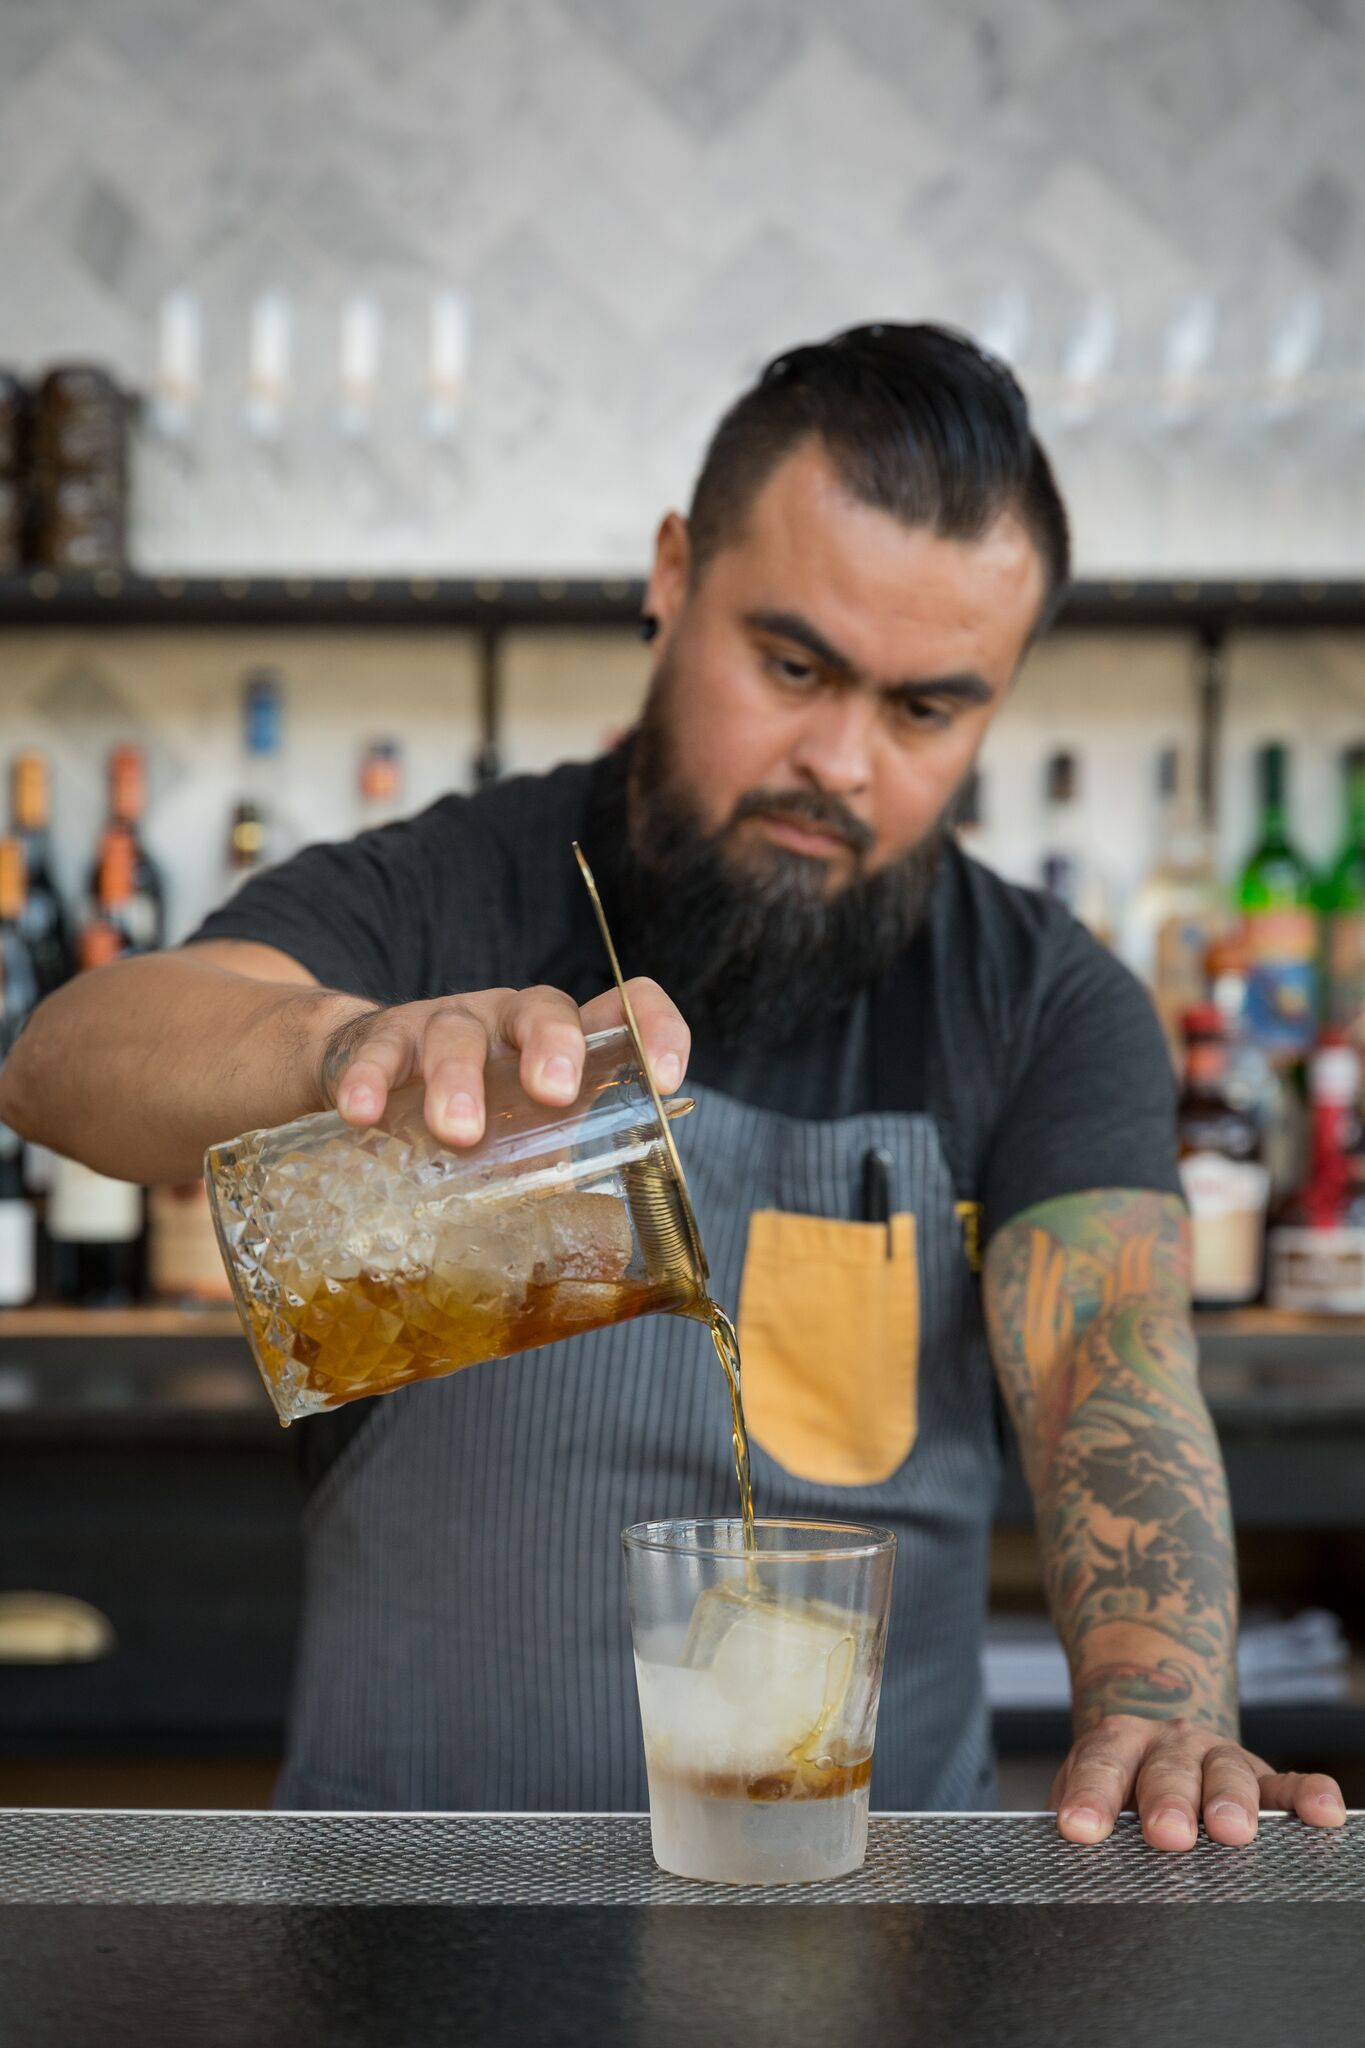 Bartender pouring cocktail at bar